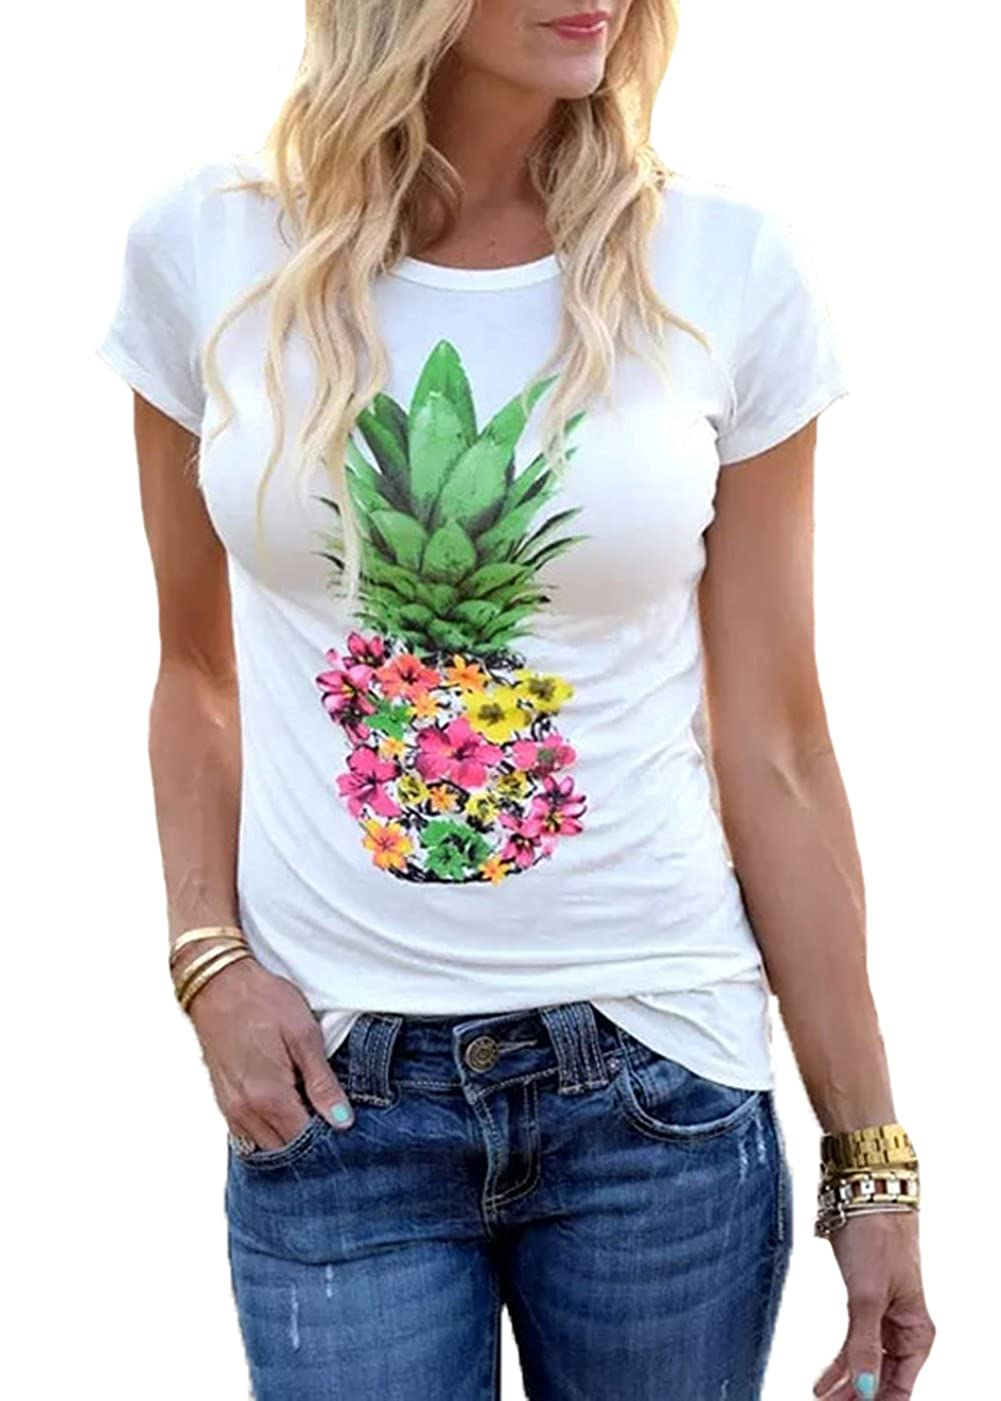 95a4e2f3fe Amazon.com  ADDRUALI0 Women Pineapple Flower T Shirts Funny Casual Short  Sleeve Tops  Clothing